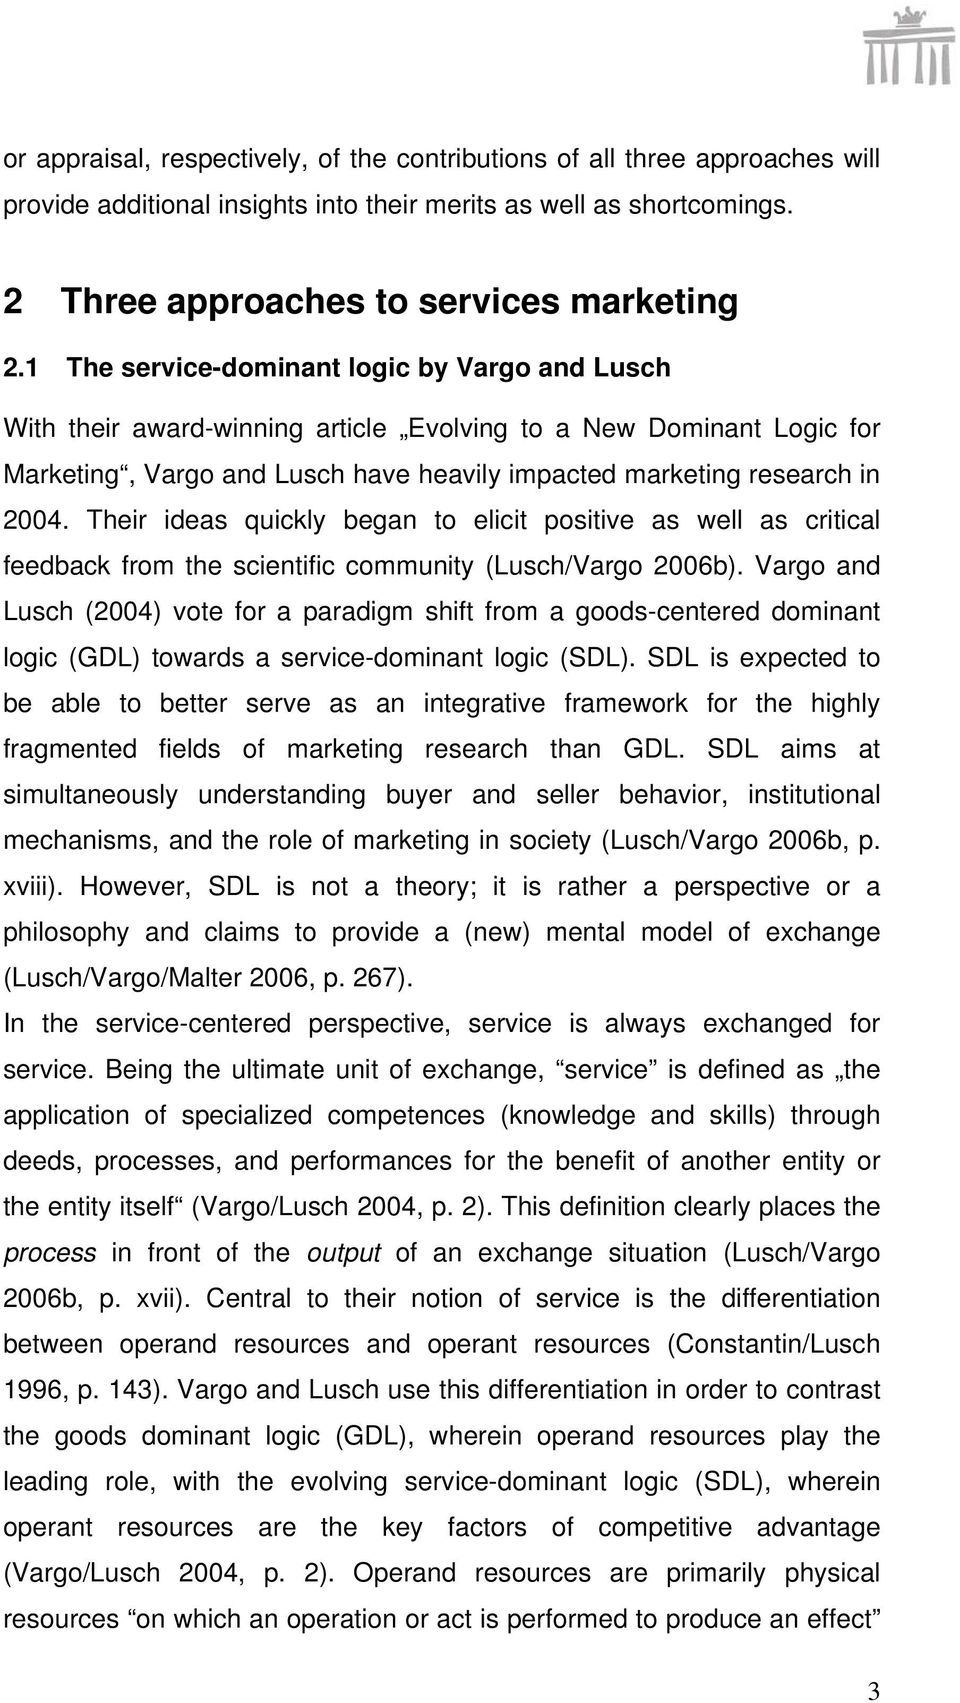 Their ideas quickly began to elicit positive as well as critical feedback from the scientific community (Lusch/Vargo 2006b).